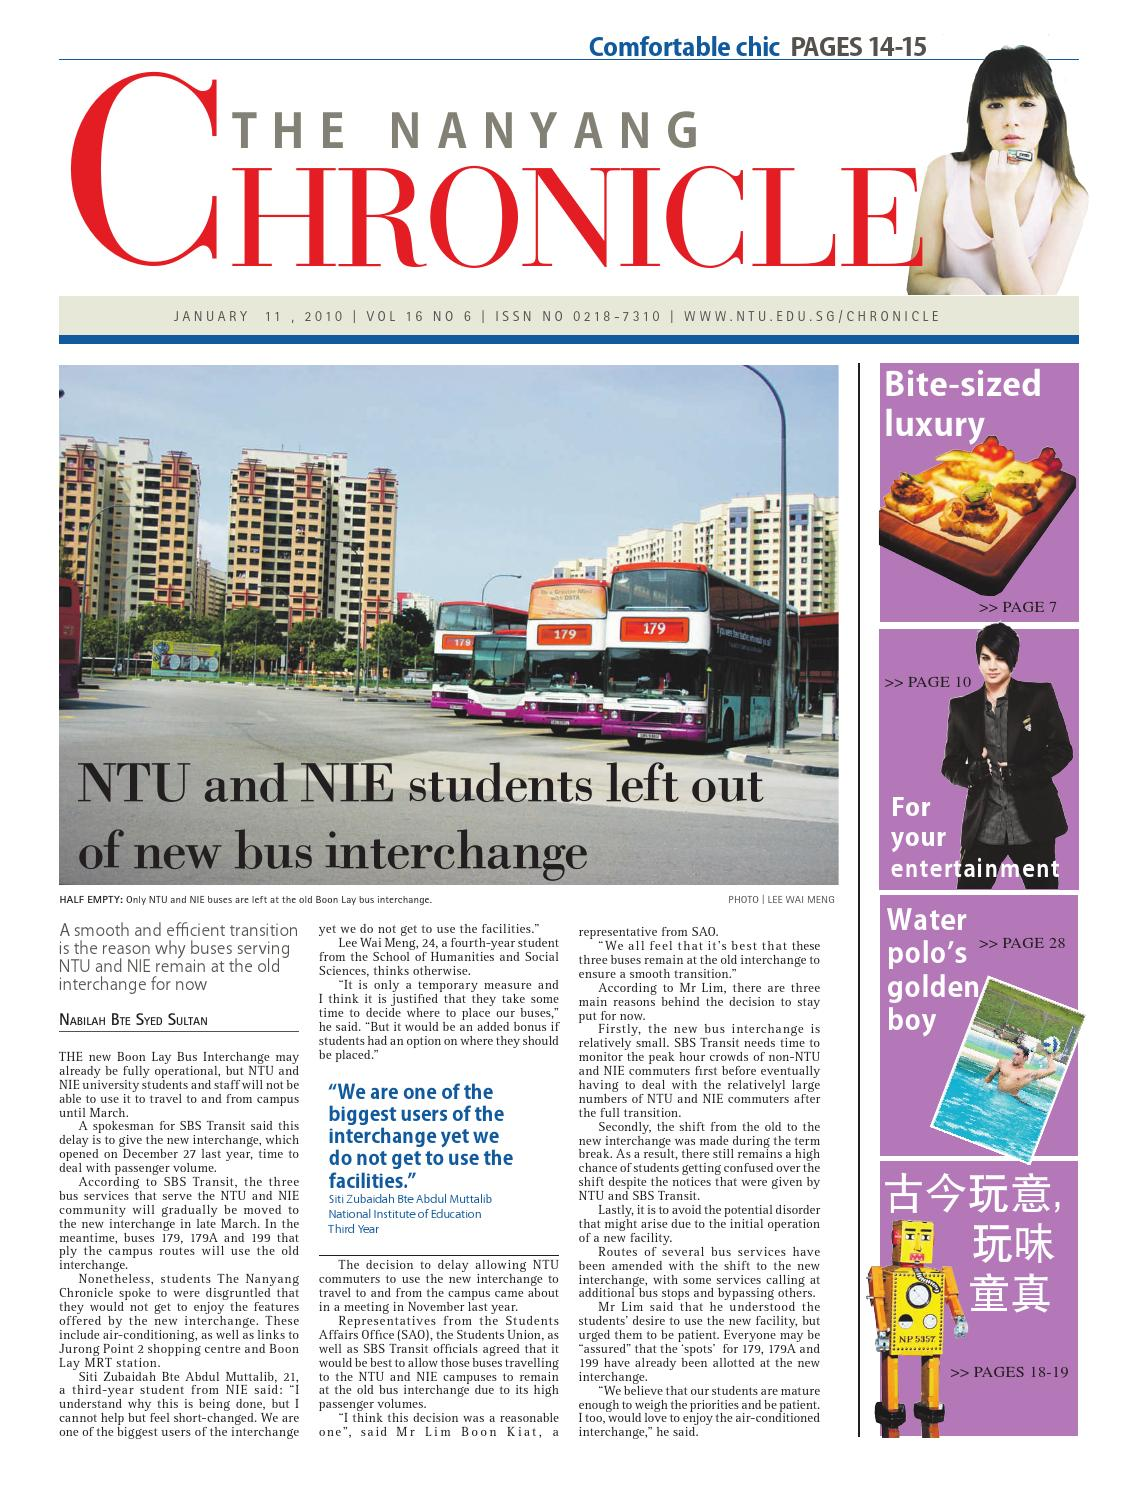 The Nanyang Chronicle Vol 16 Issue 06